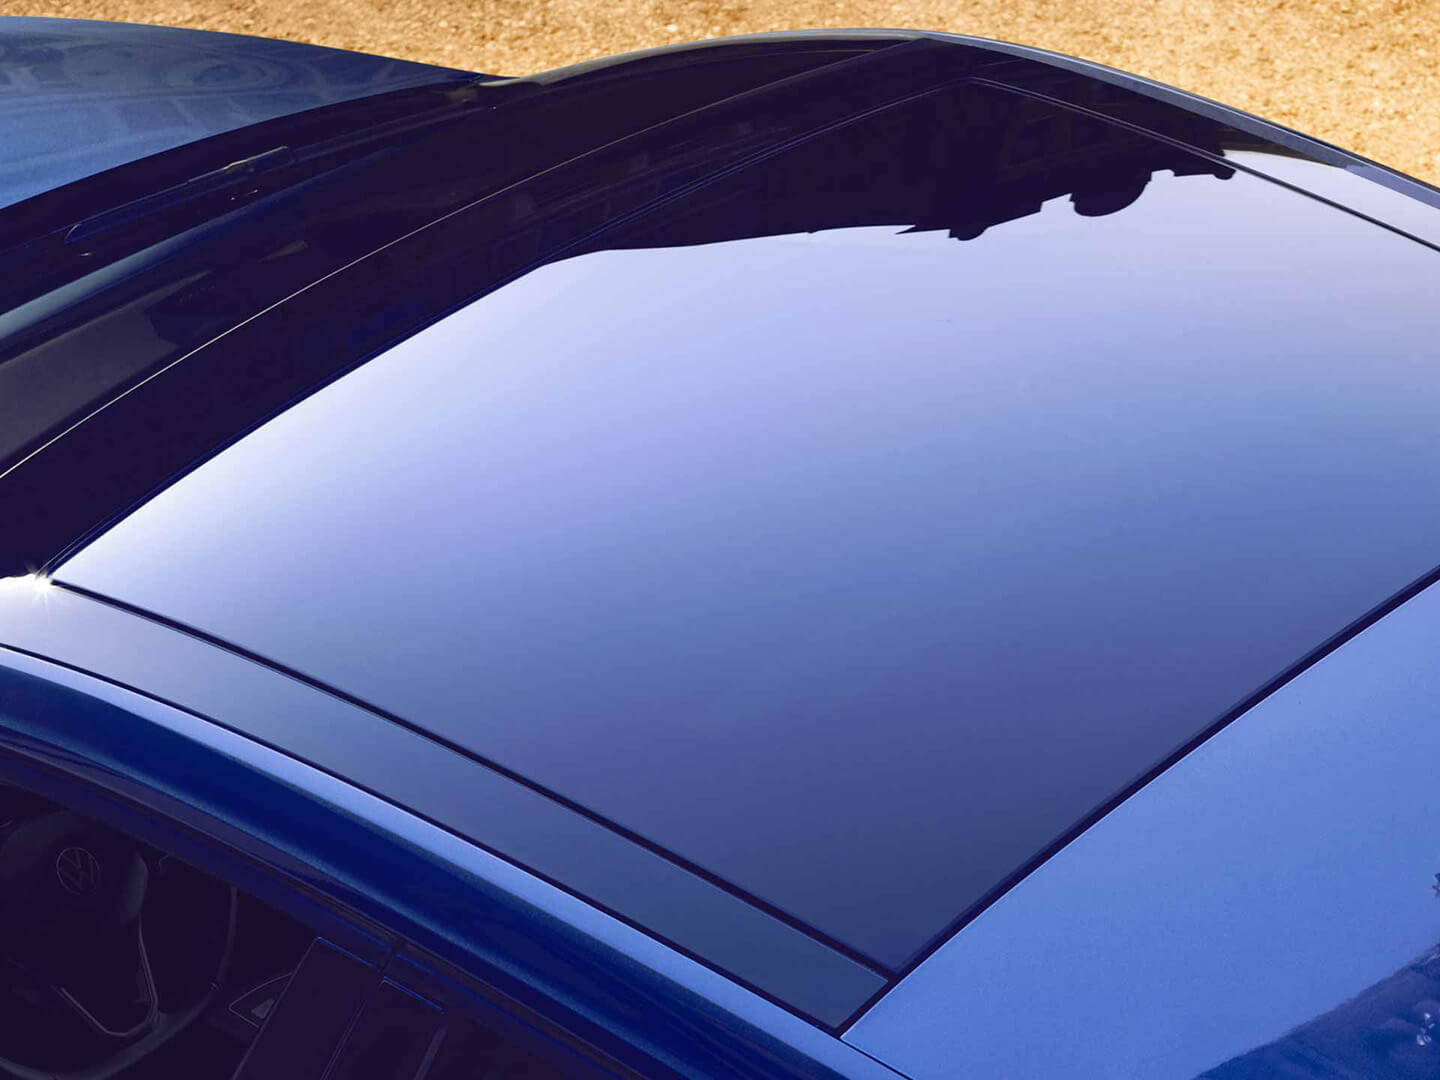 The world looks a little brighter Panoramic Roof Image